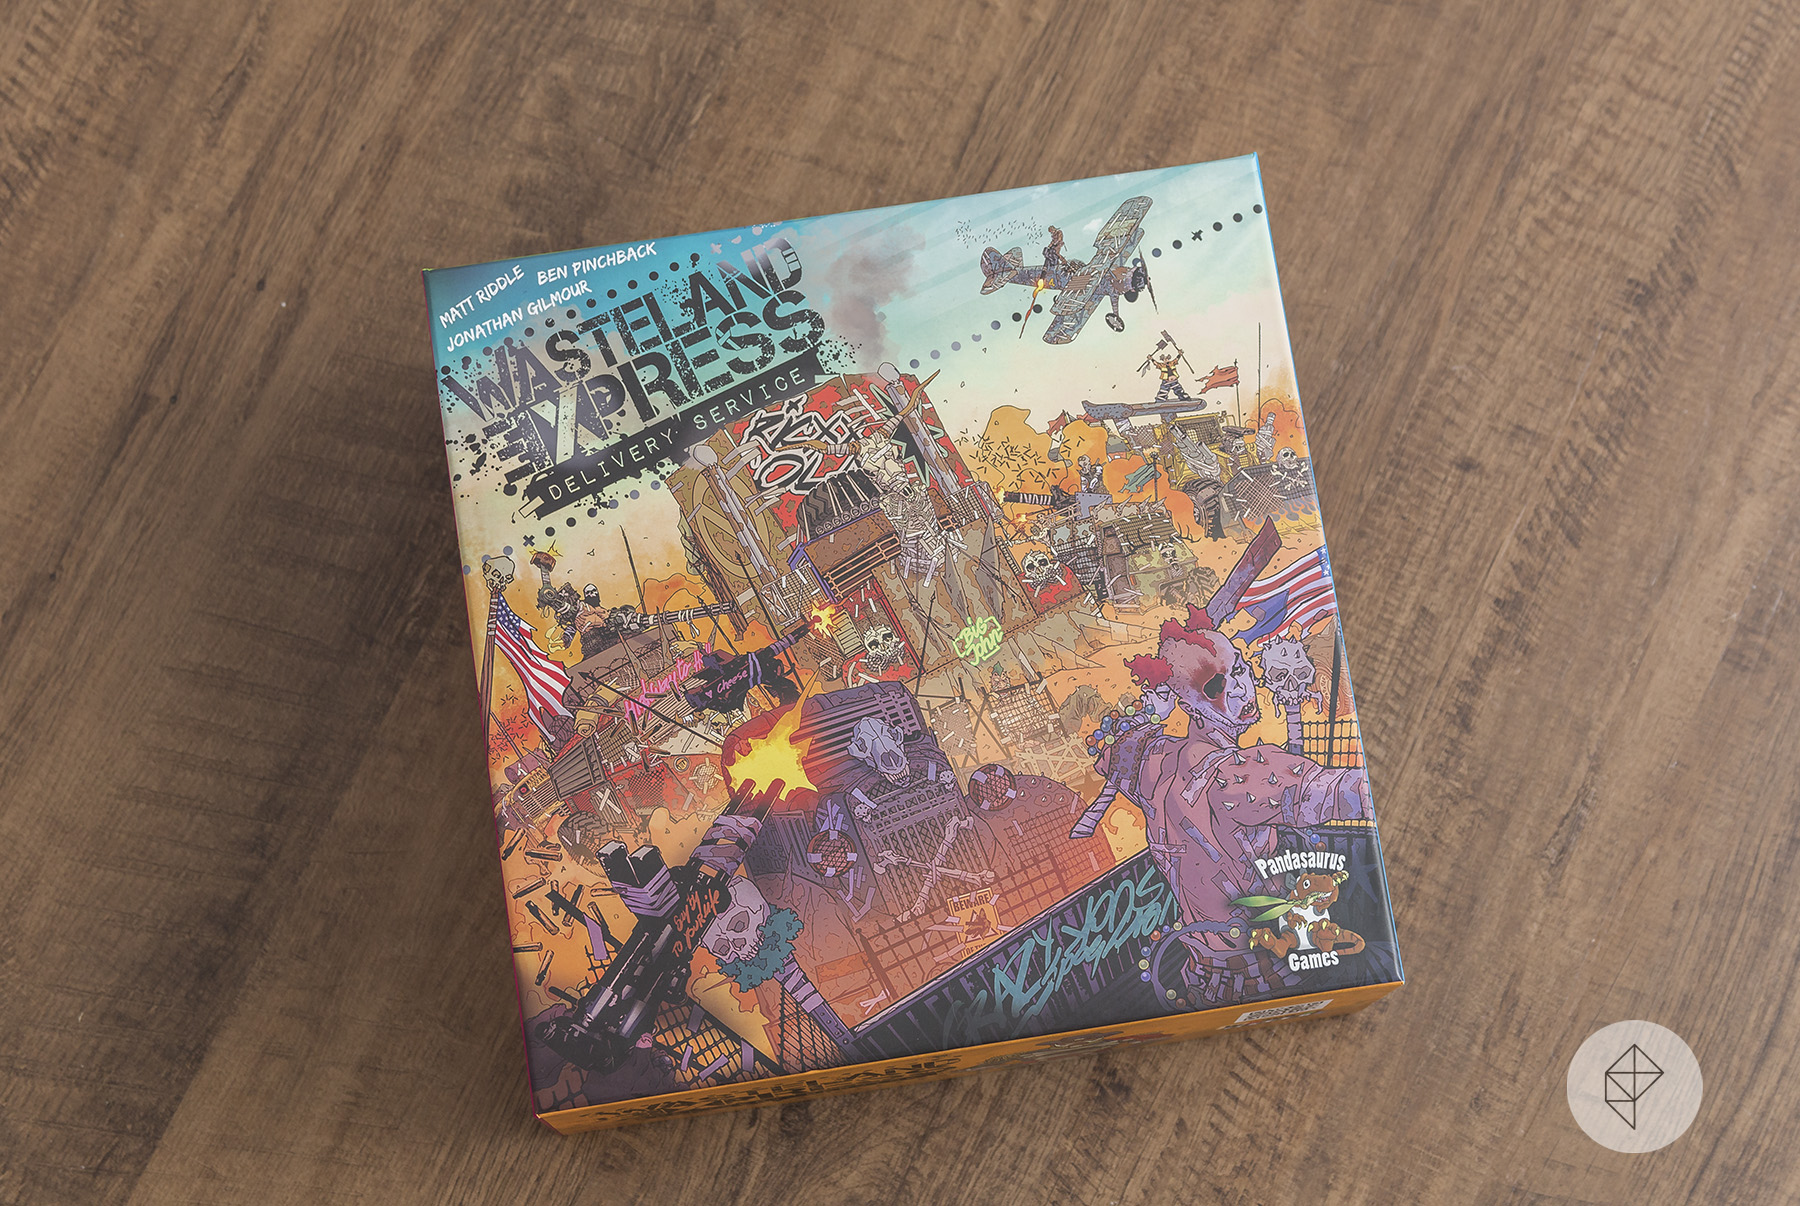 The box for the Wasteland Express Delivery Service table top game